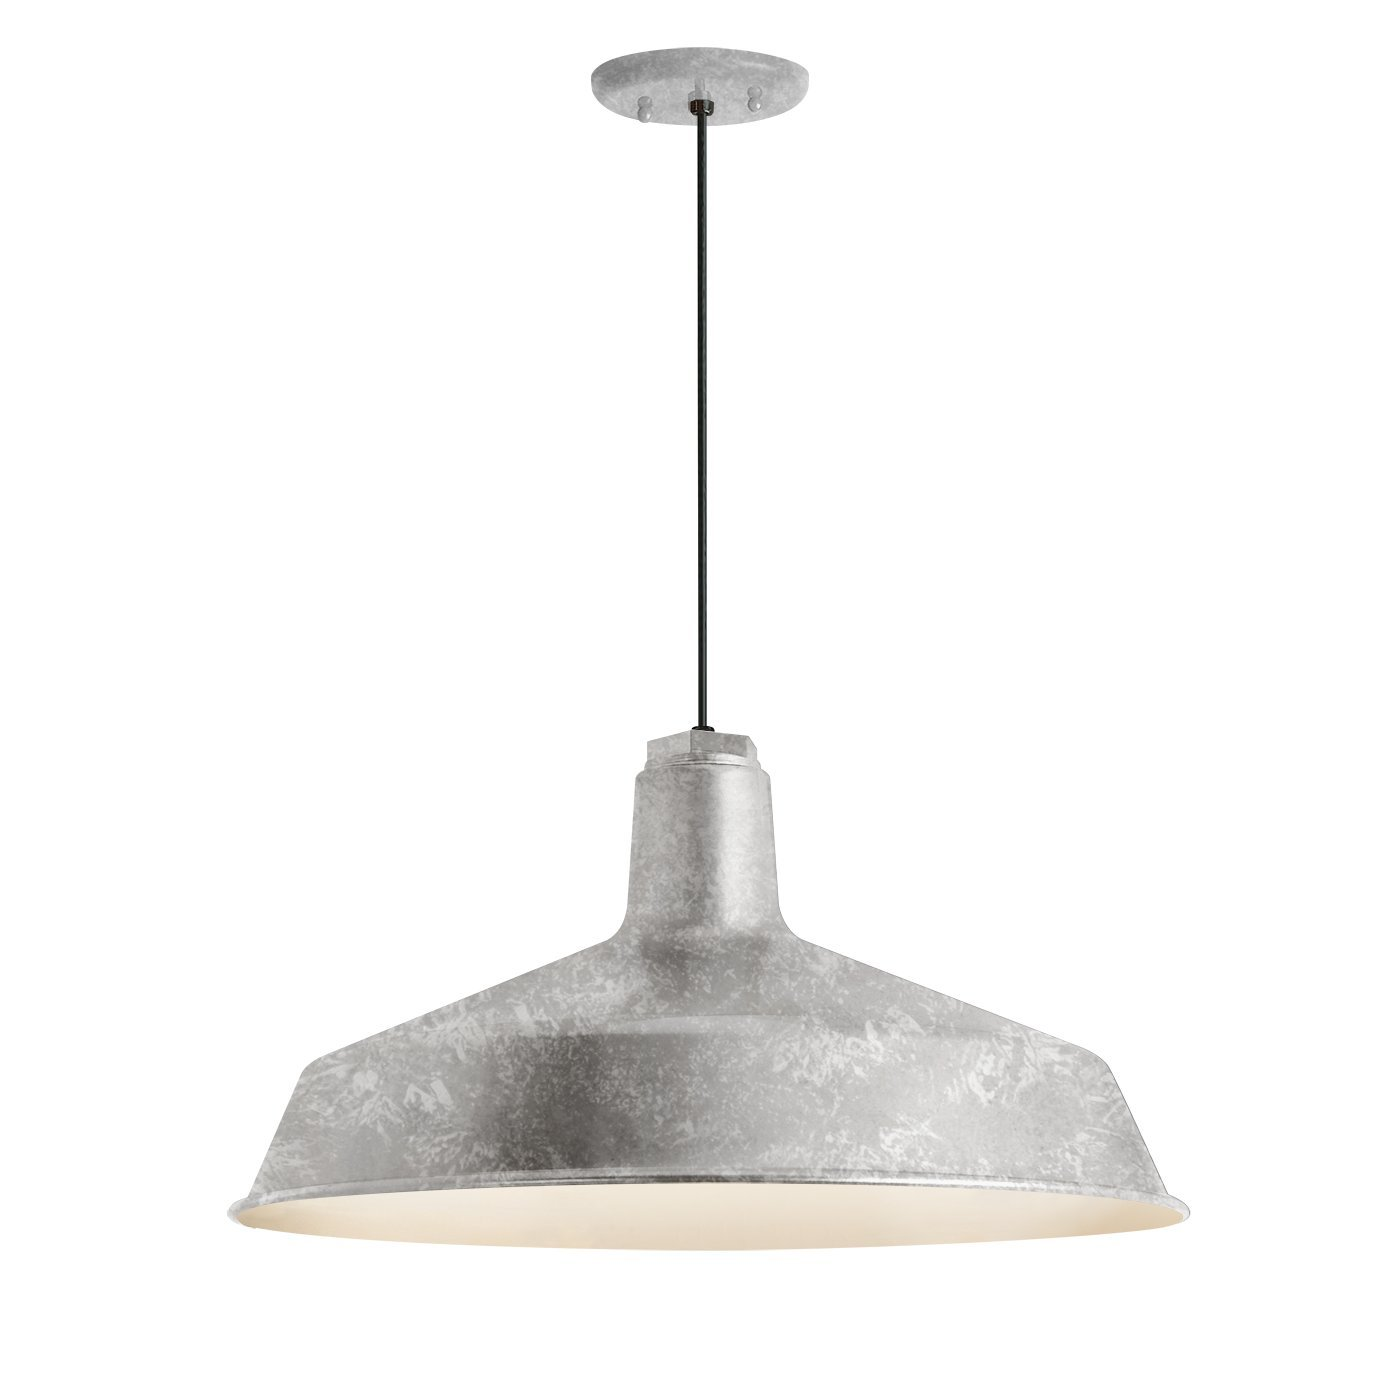 Troy RLM 5DRS16MGA-BC Standard Outdoor Pendant, Galvanized by Troy RLM